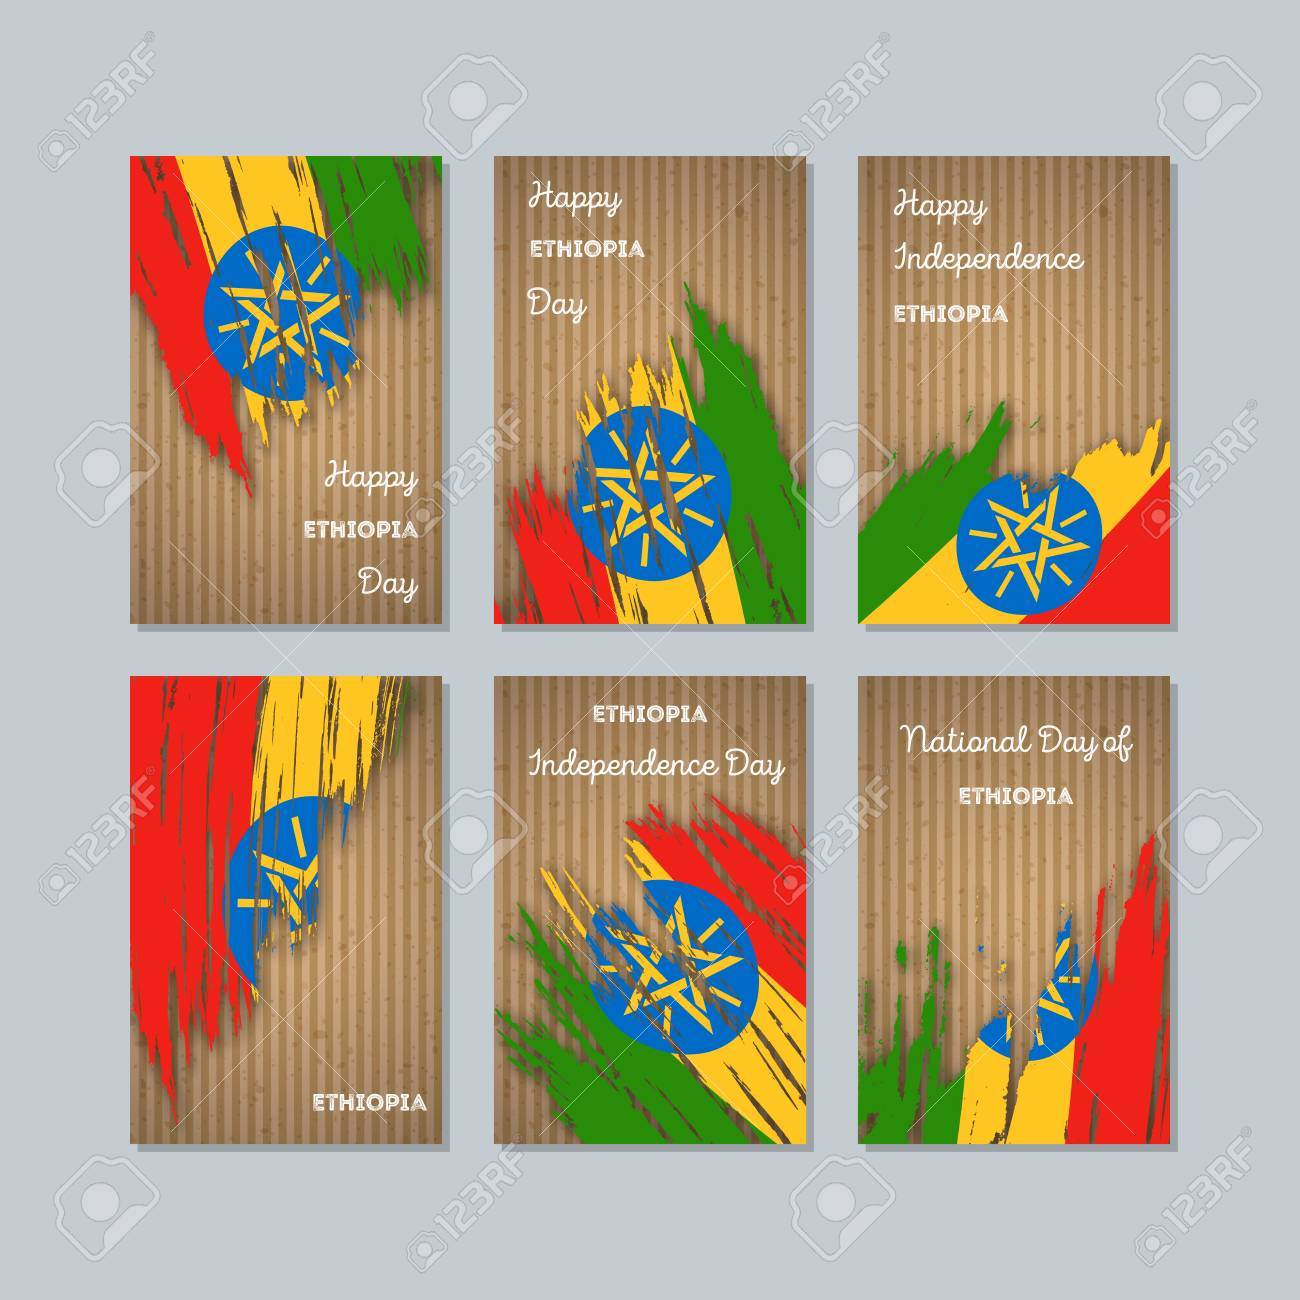 Ethiopia Patriotic Cards For National Day Expressive Brush Stroke